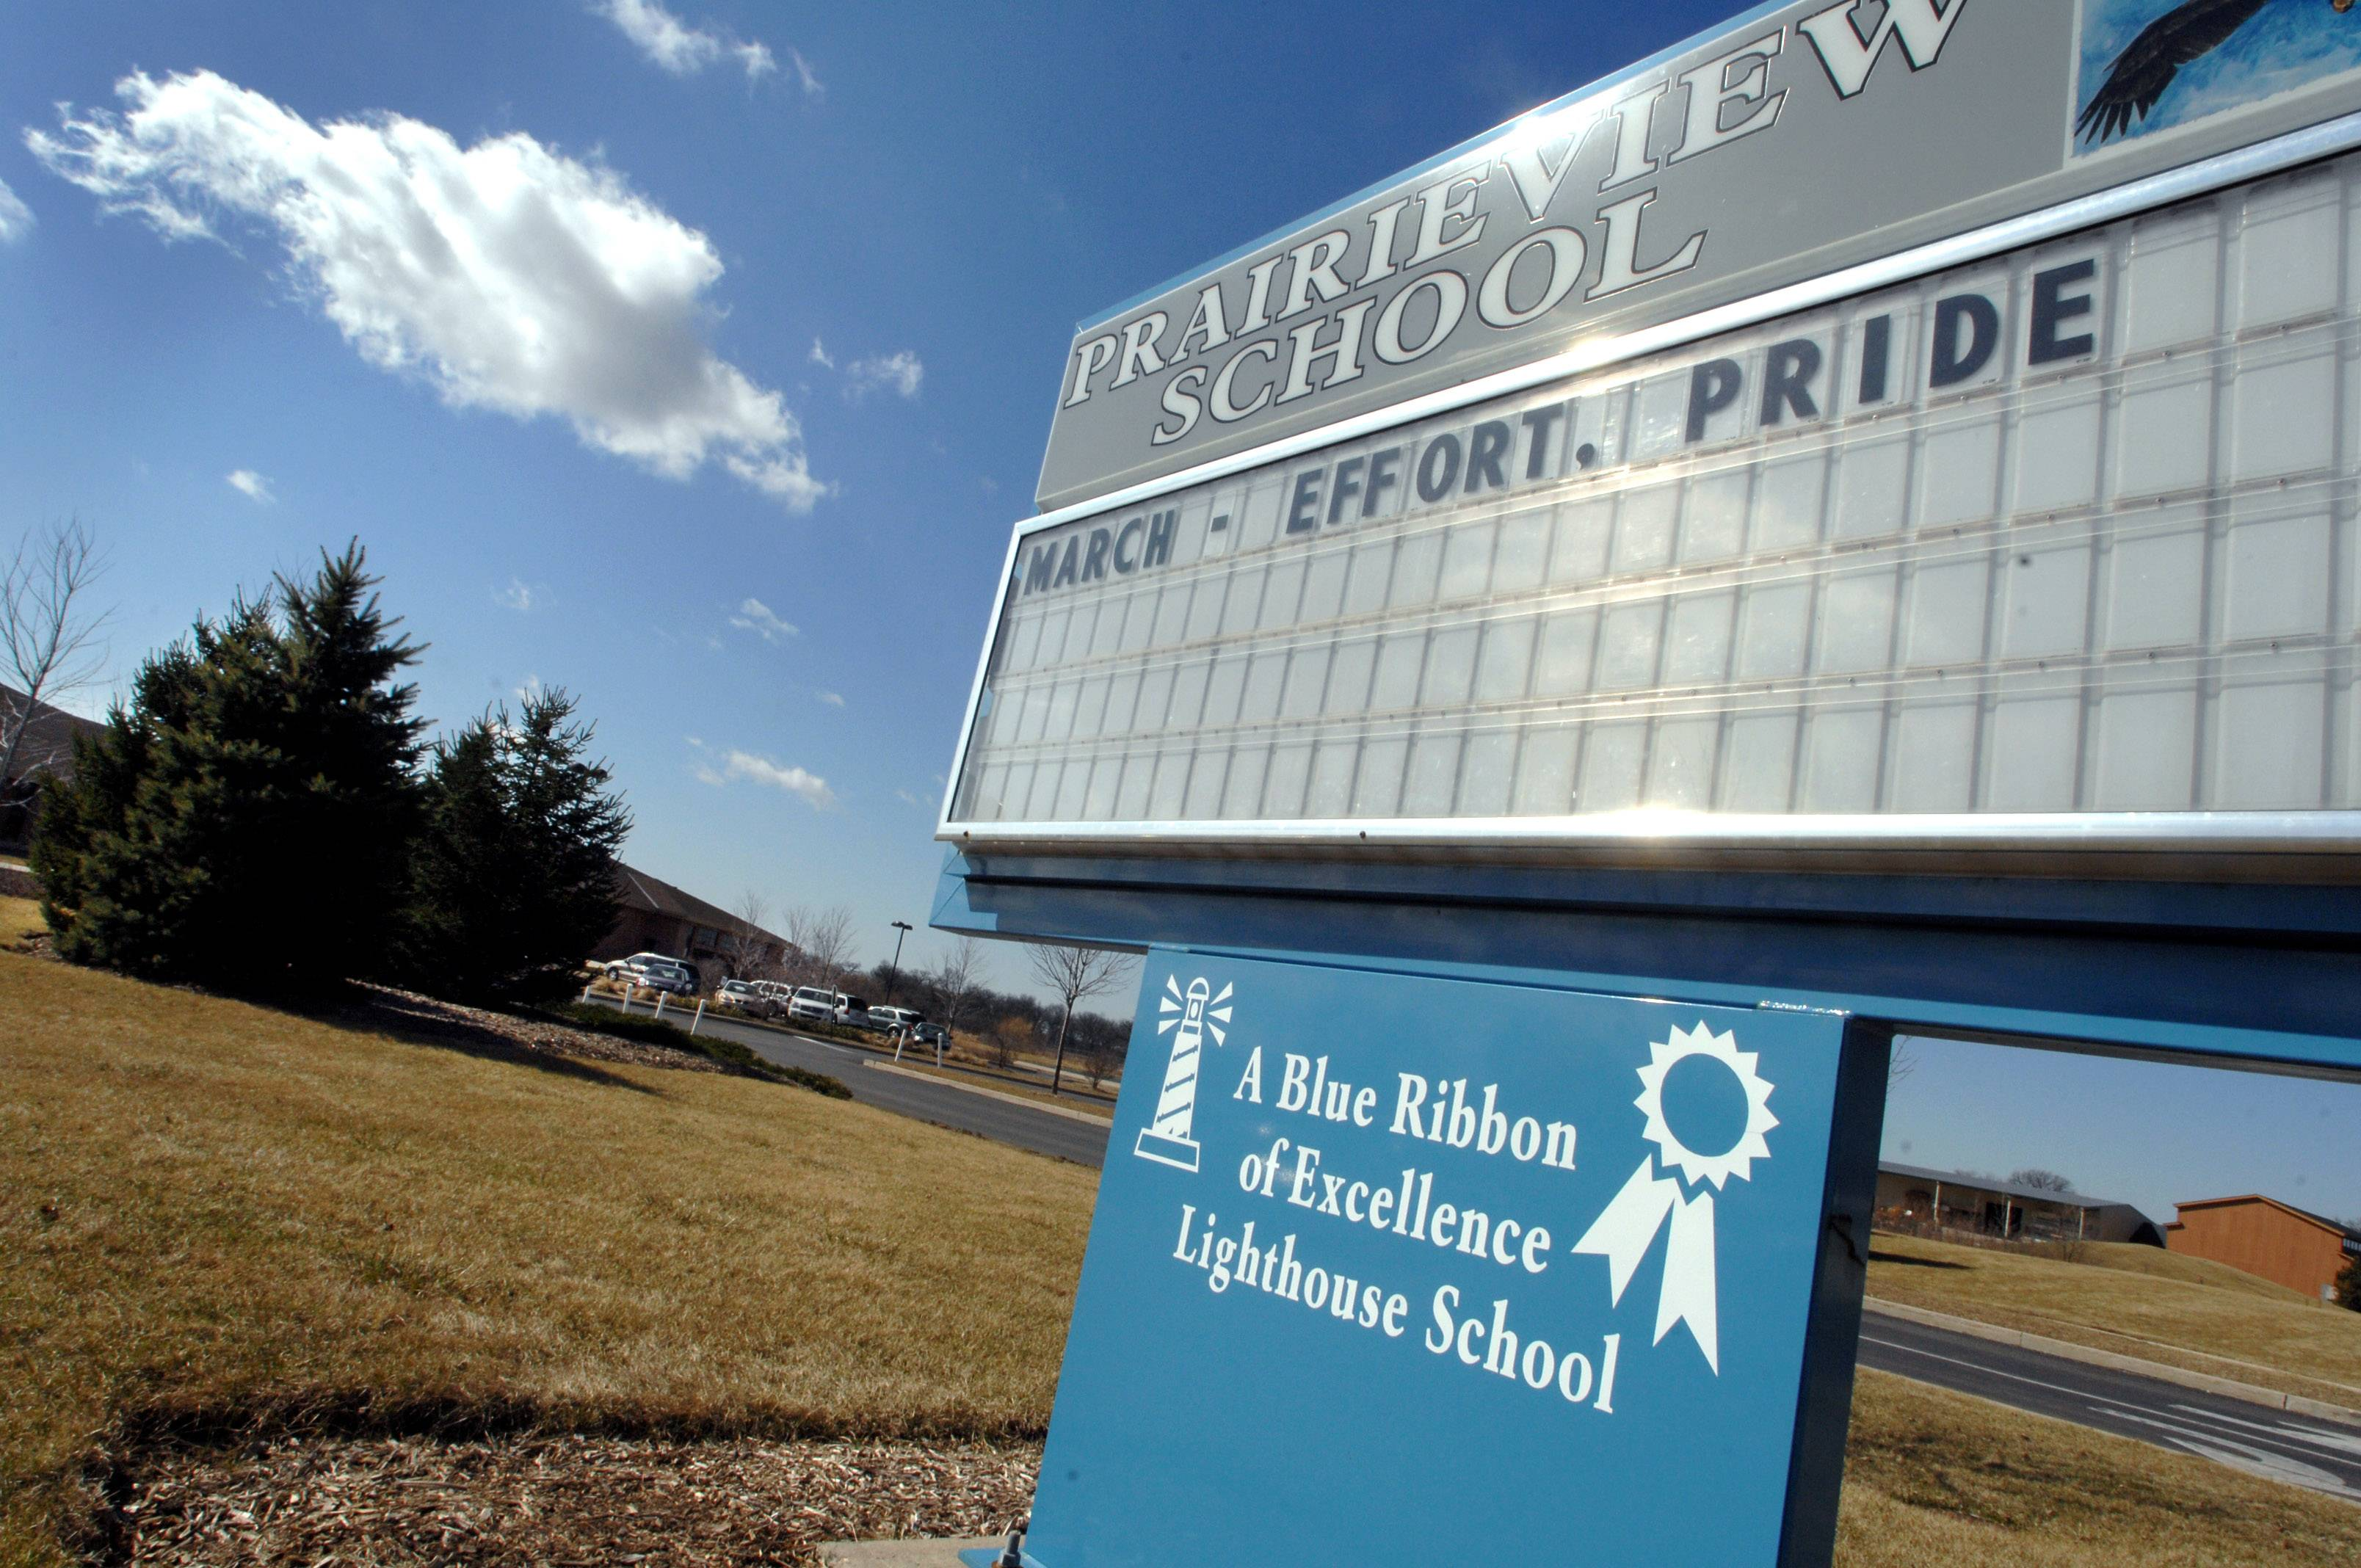 Prairieview School in Hainesville is one of the Grayslake Elementary District 46 schools. Some parents say they want the district to start all-day kindergarten.